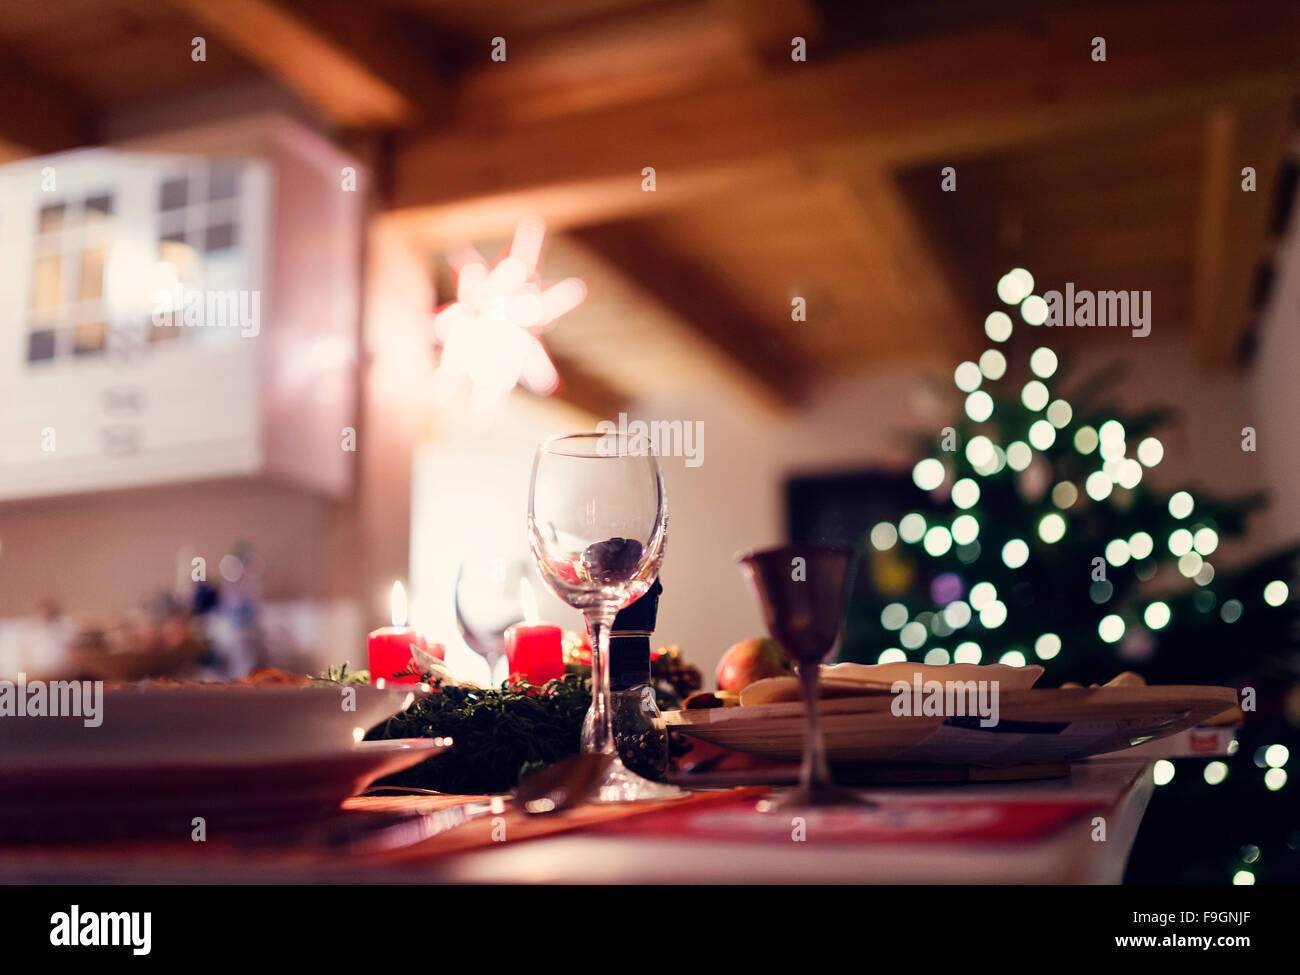 Christmas meal laid on a table in a decorated living room - Stock Image